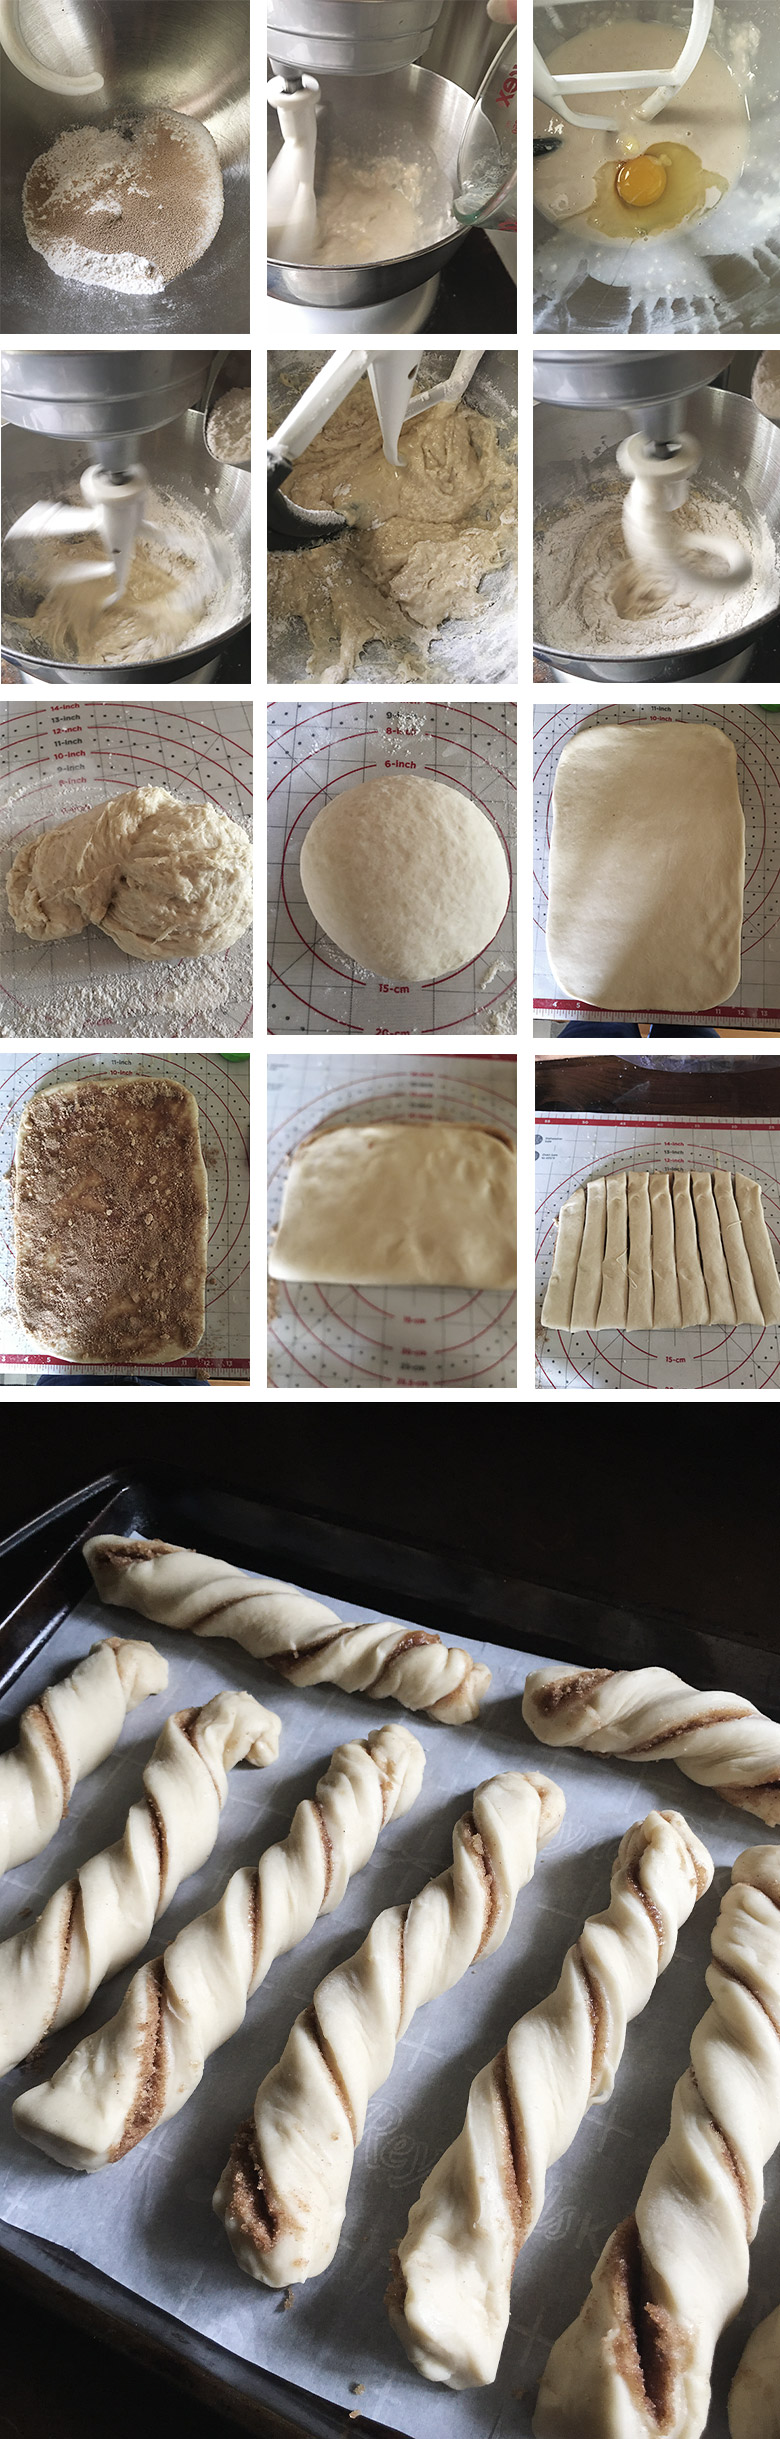 step by step photo collage of making cinnamon twists